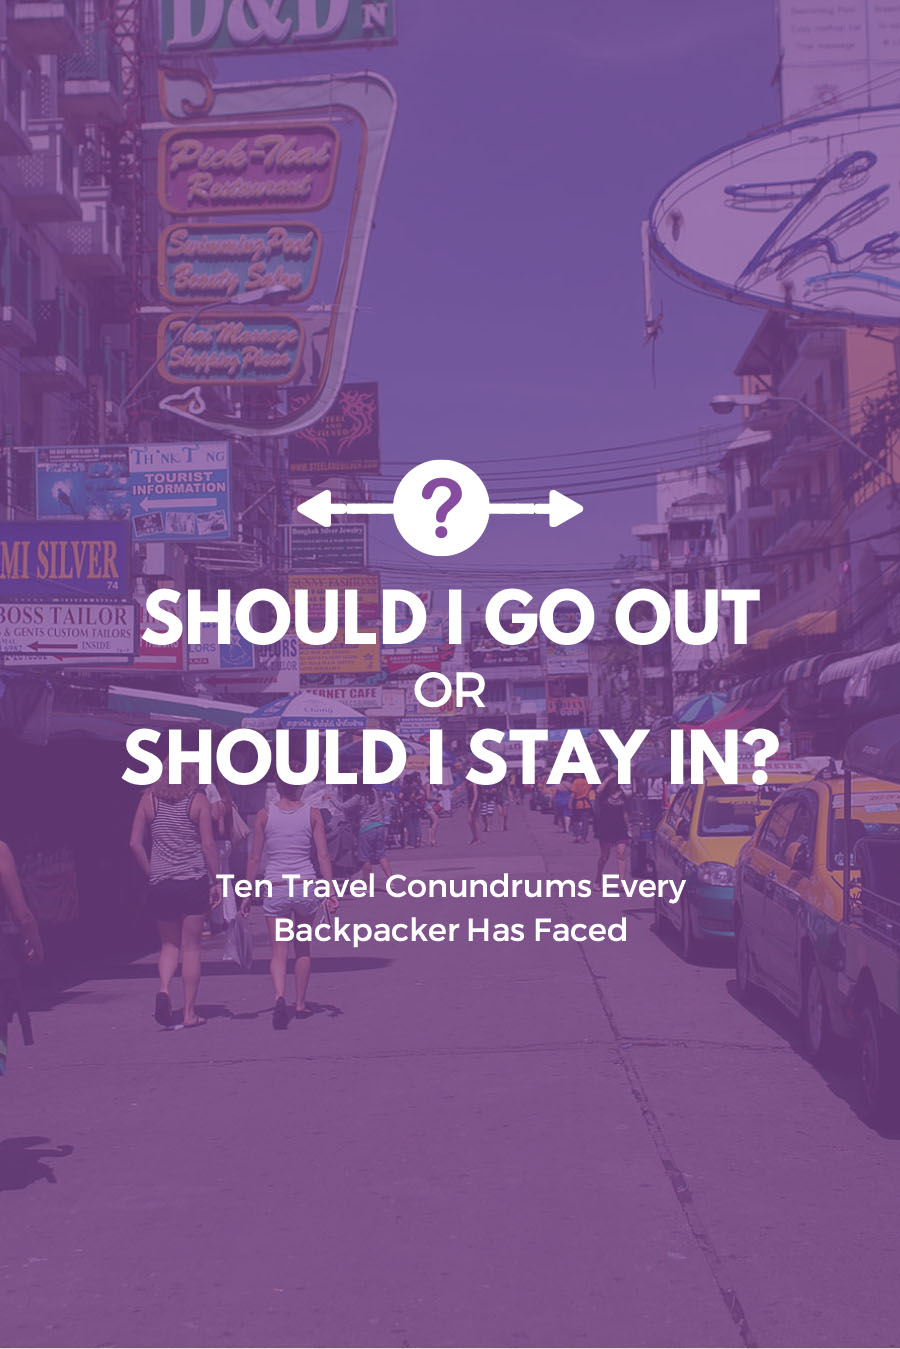 Should I go out or should I stay in? | Ten Travel Conundrums Every Backpacker Has Faced